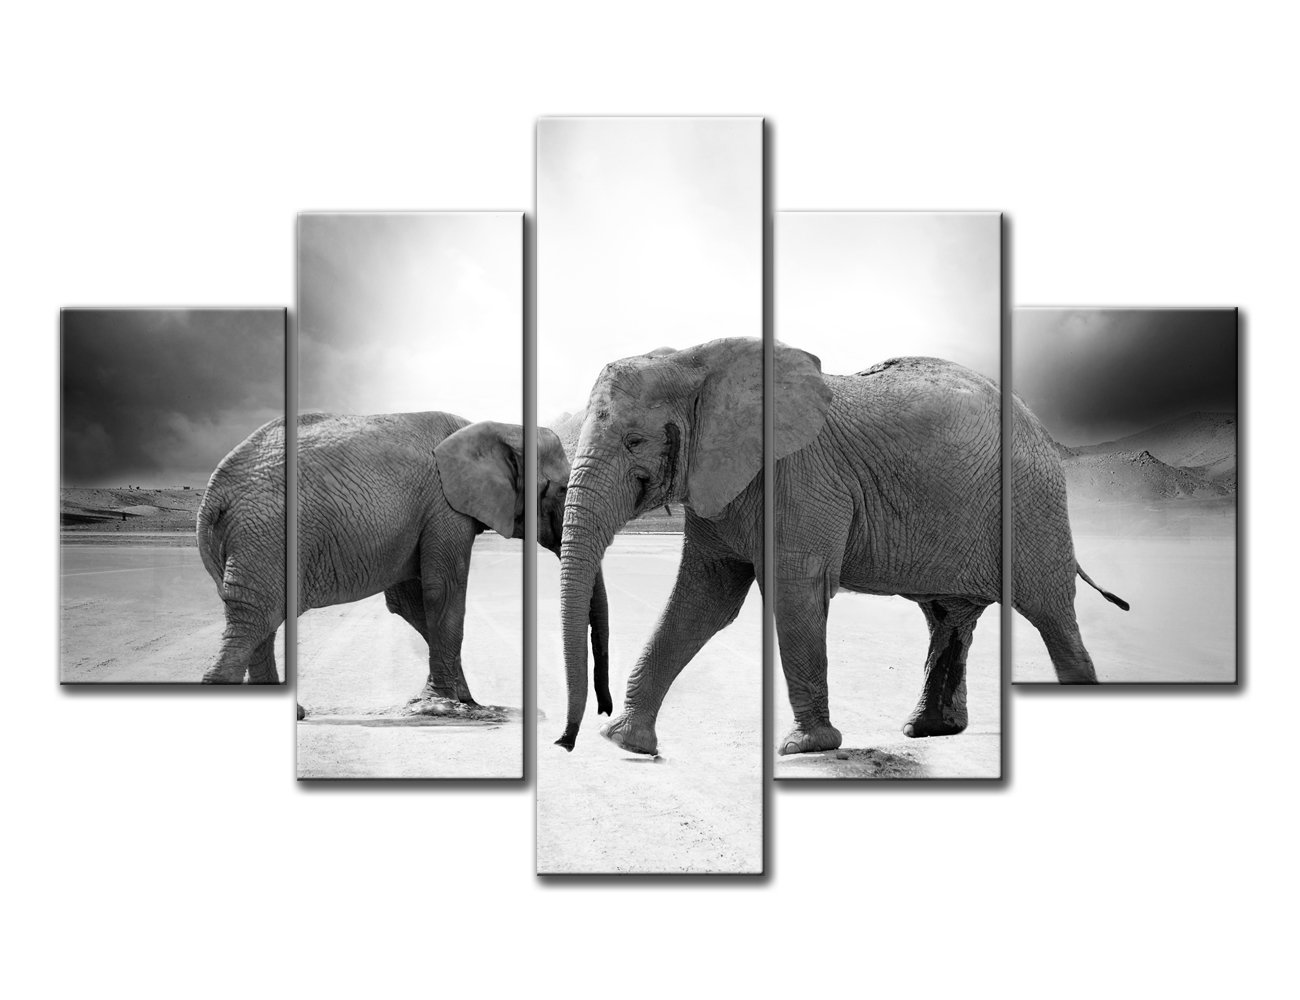 Hd black african two elephant head wood portrait wall art painting the picture print on canvas wildlife animal pictures 5 piece wall art for home decor